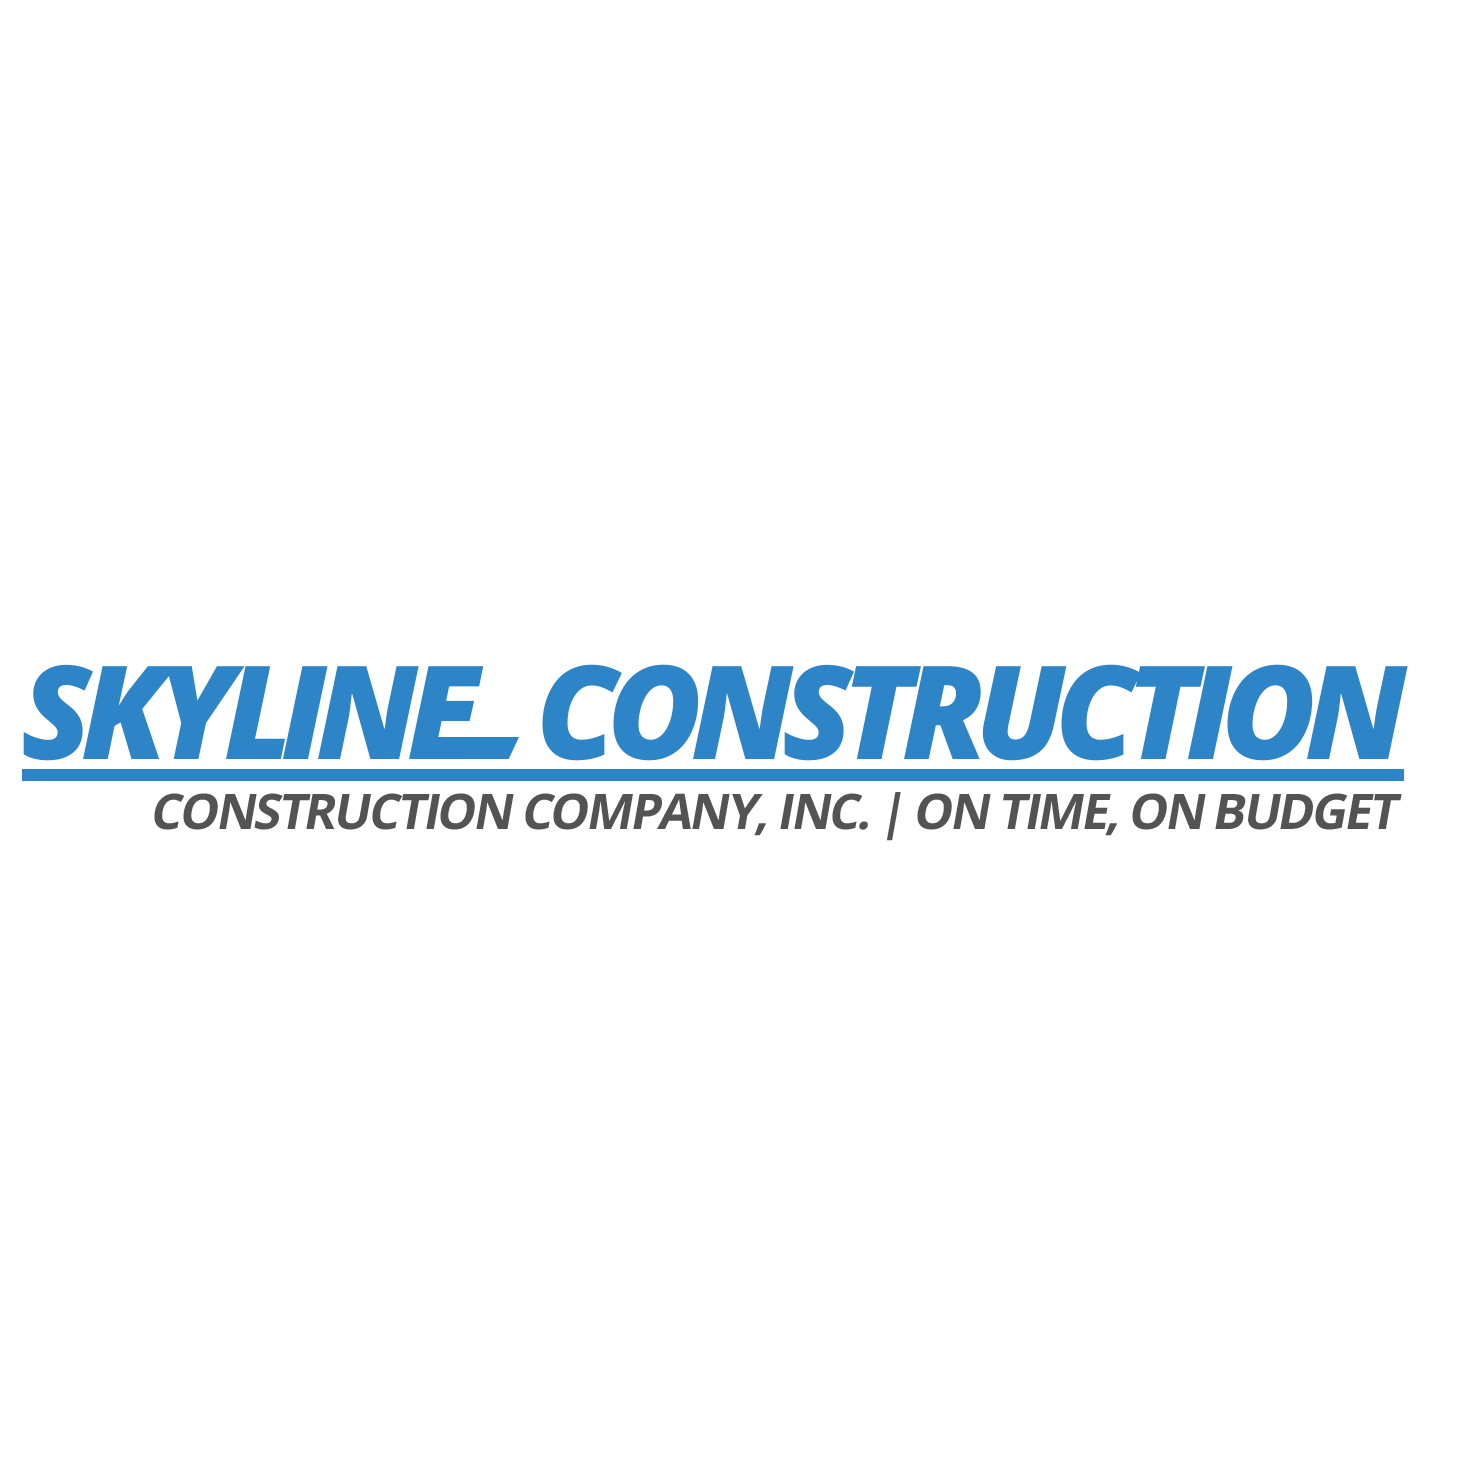 Skyline Construction Company, Inc.